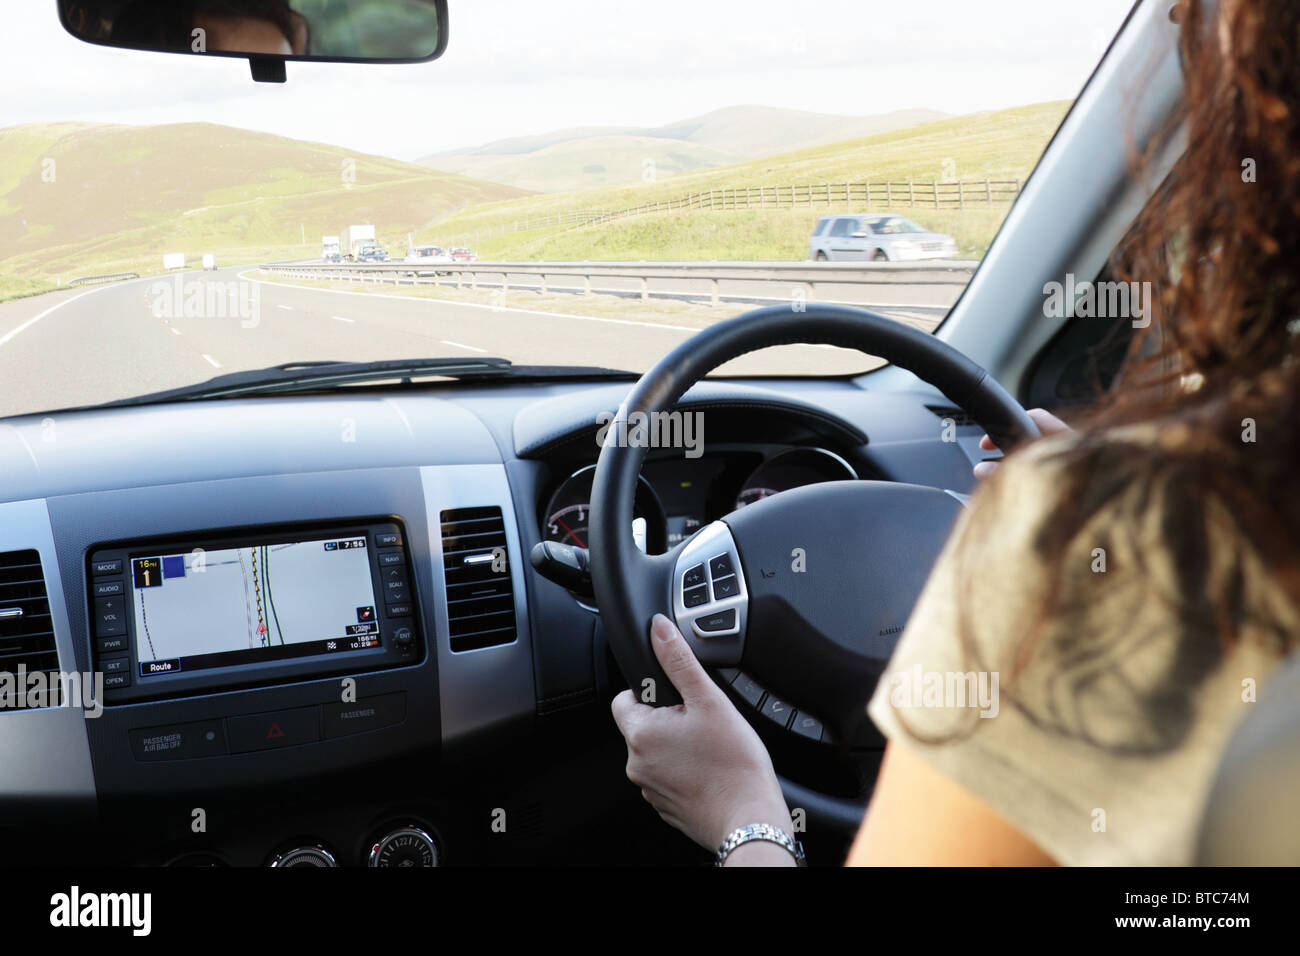 Driving a car - Stock Image